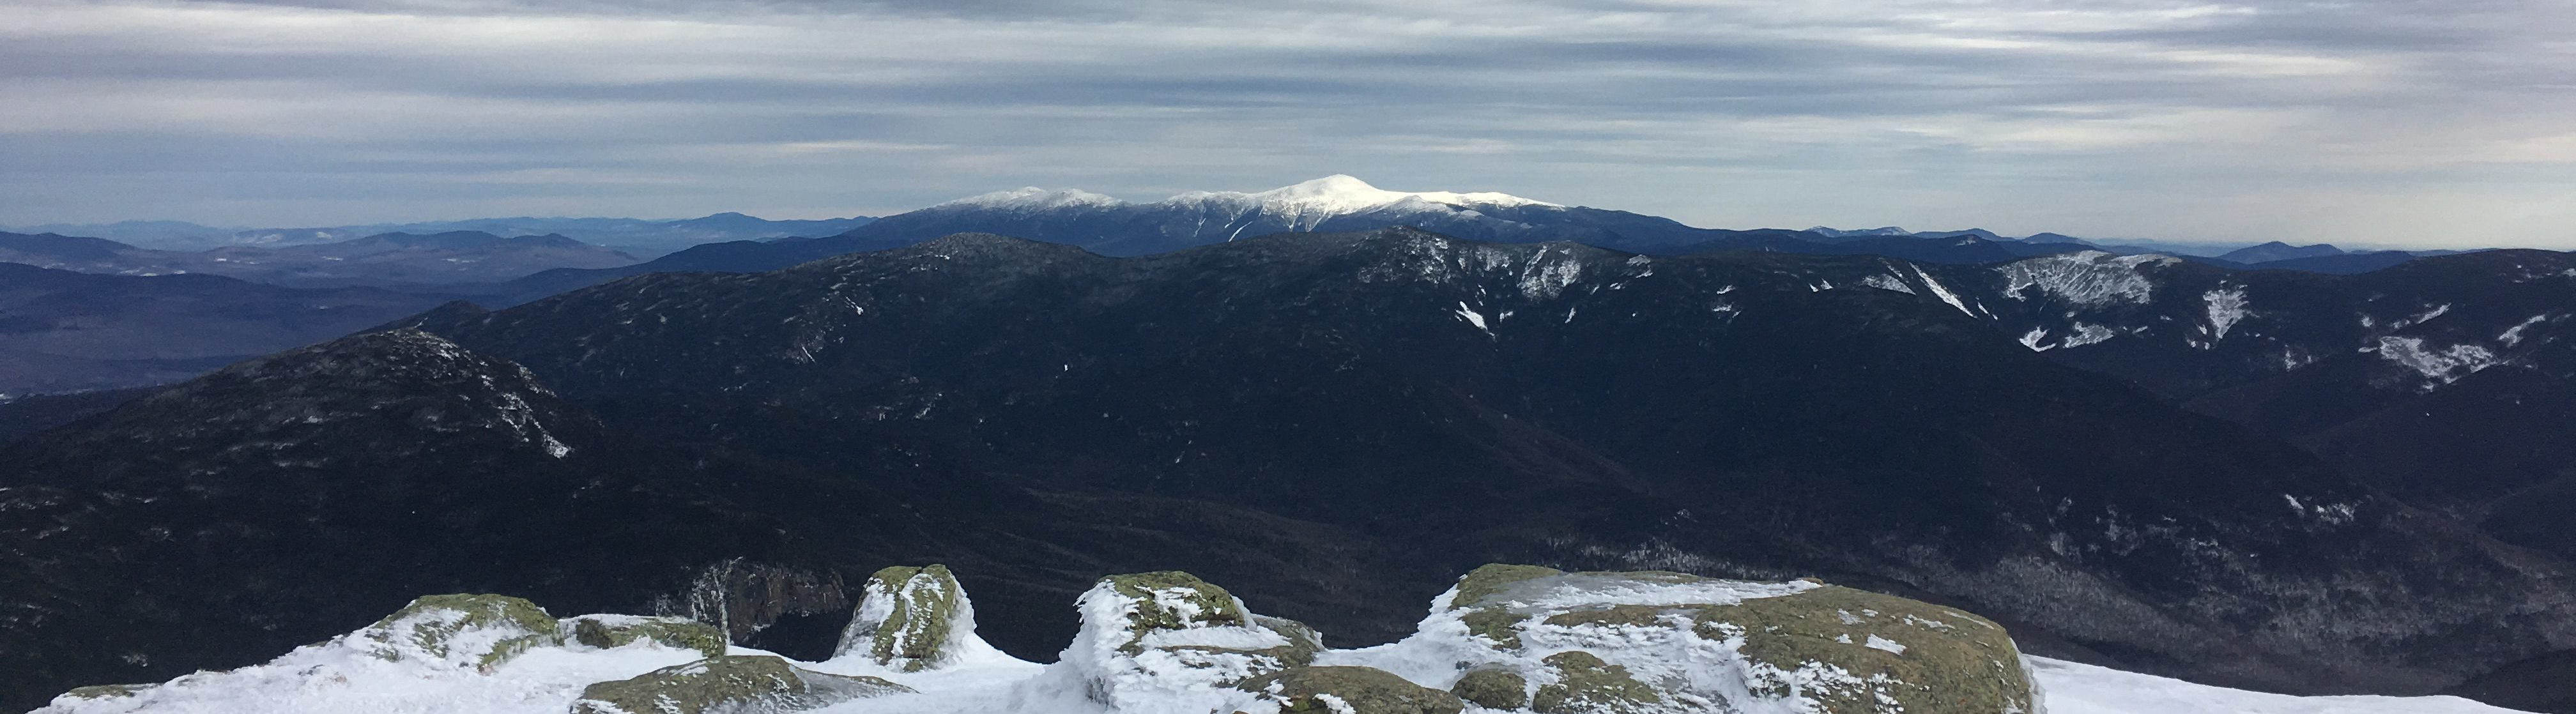 Hiking Mount Lafayette – Franconia Notch's Highest Peak